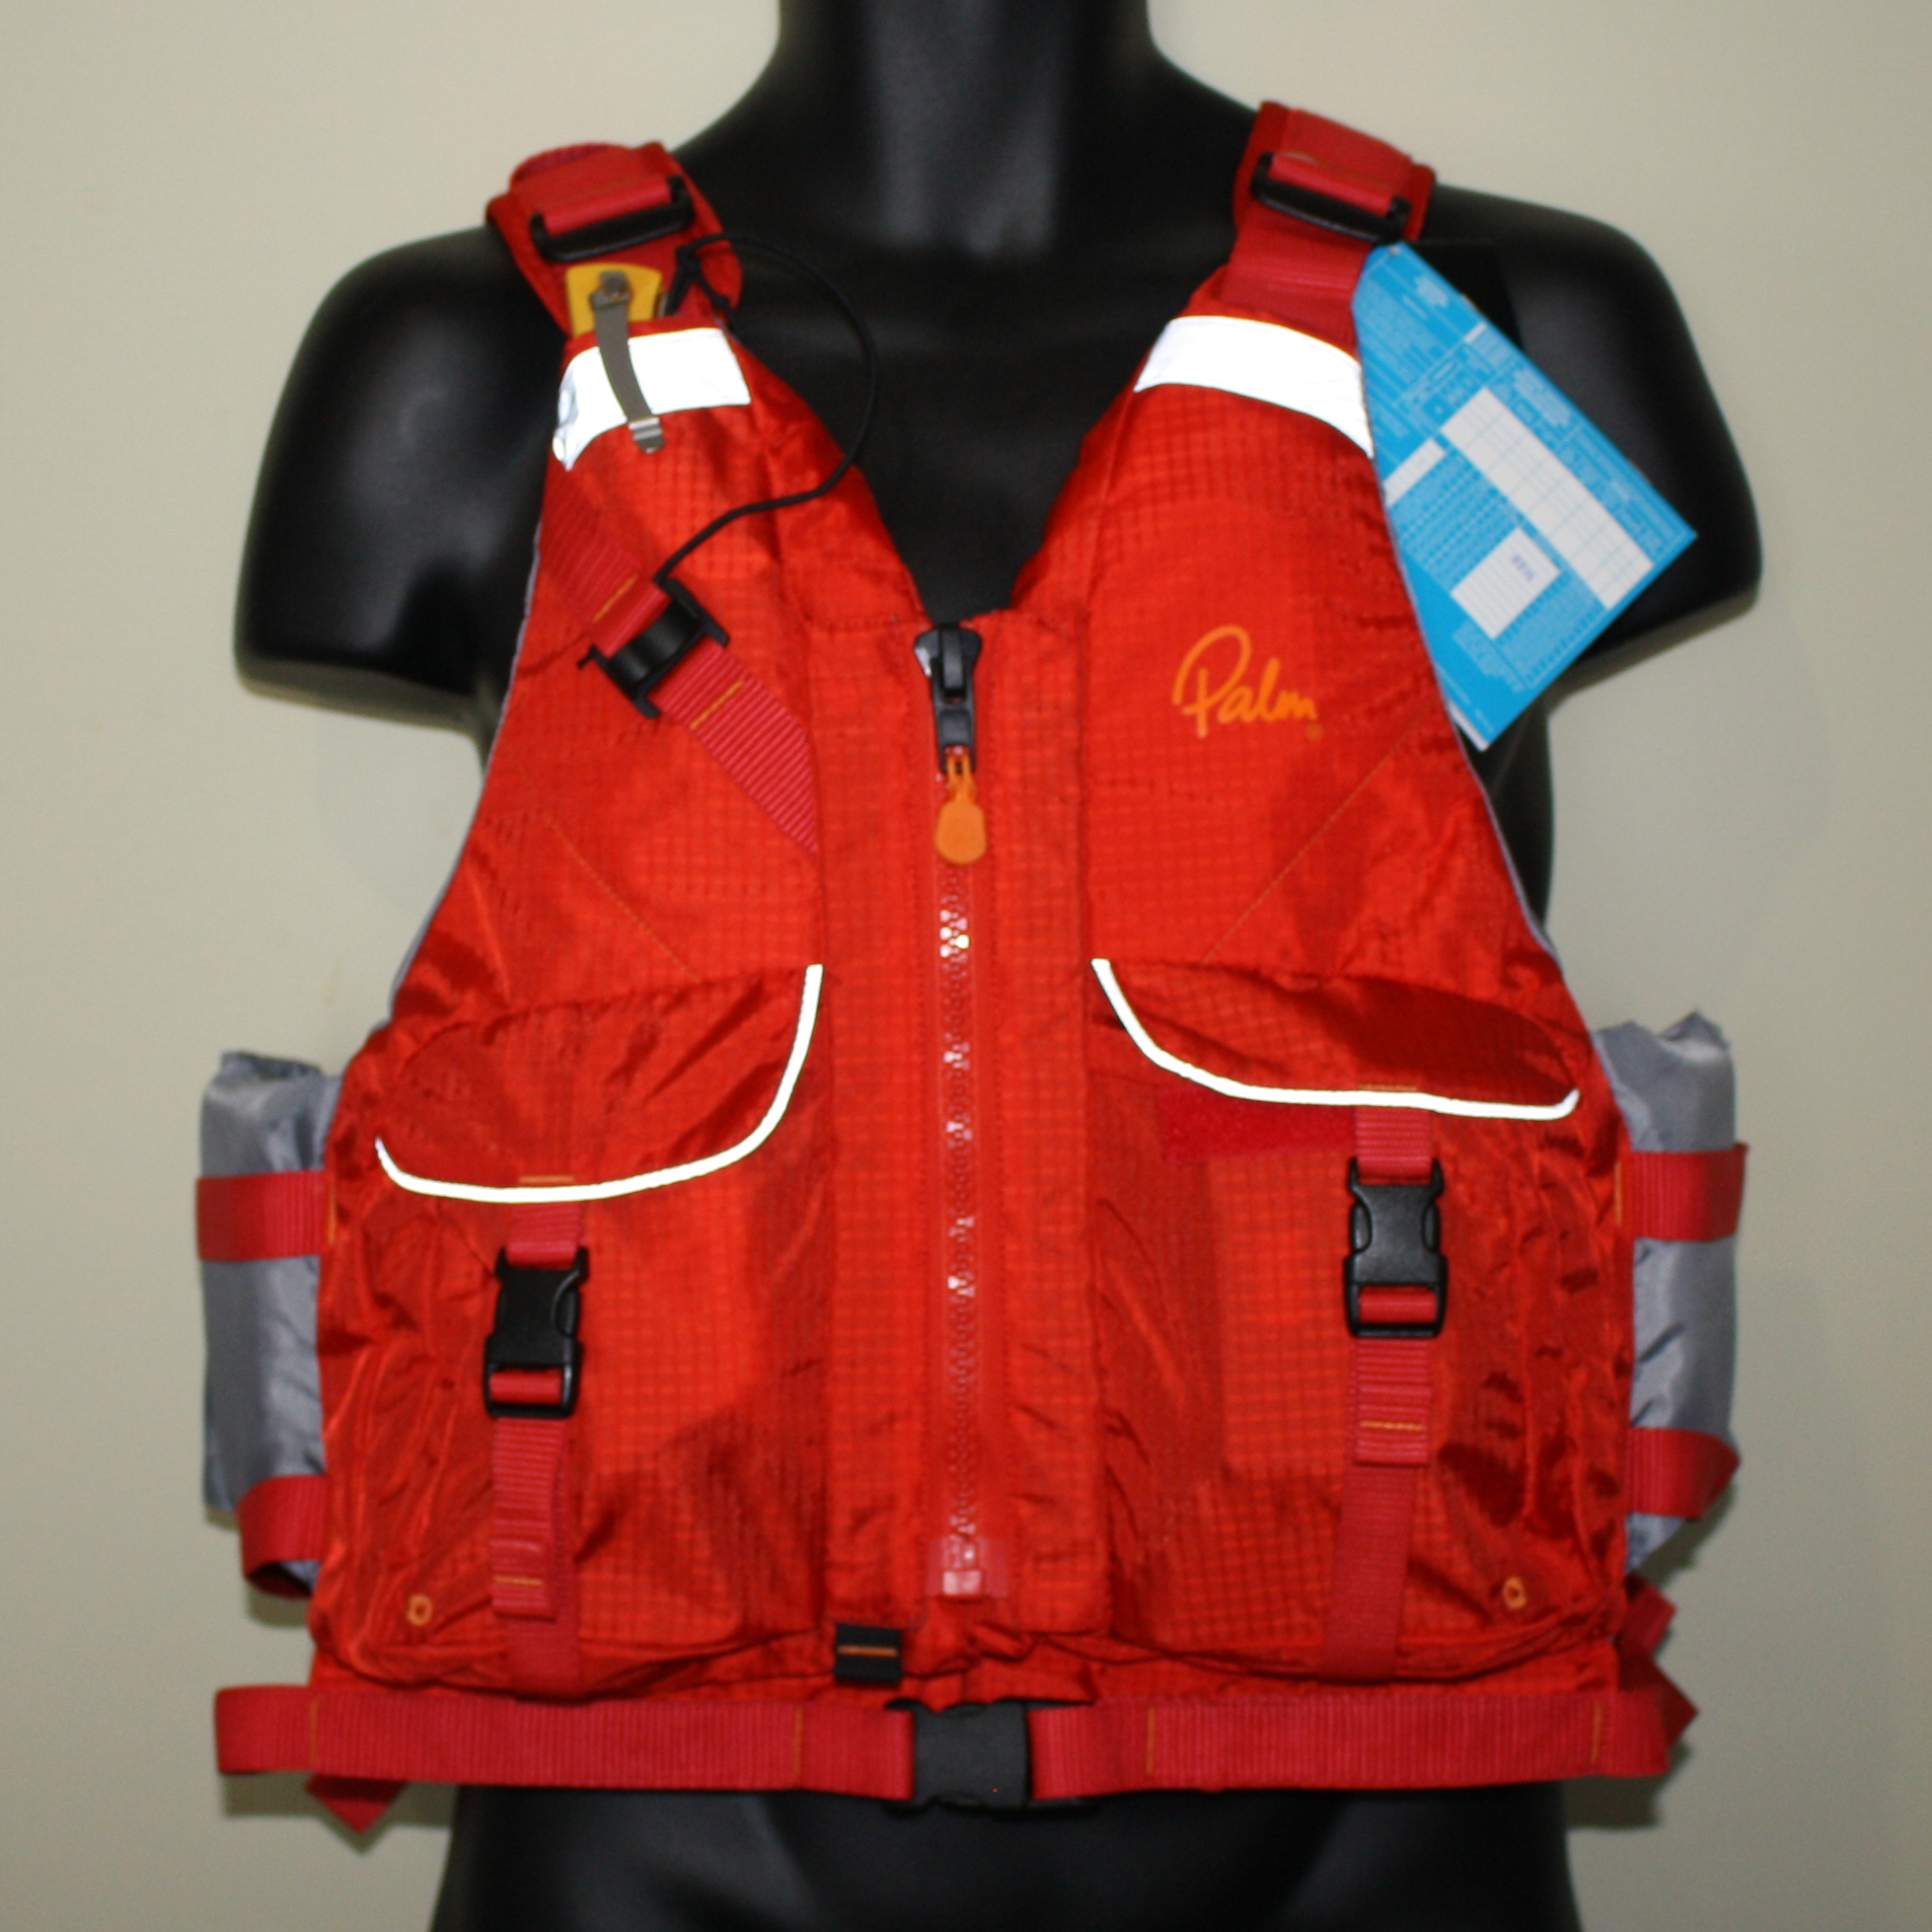 How much pocket space does a Palm Hydro PFD have?